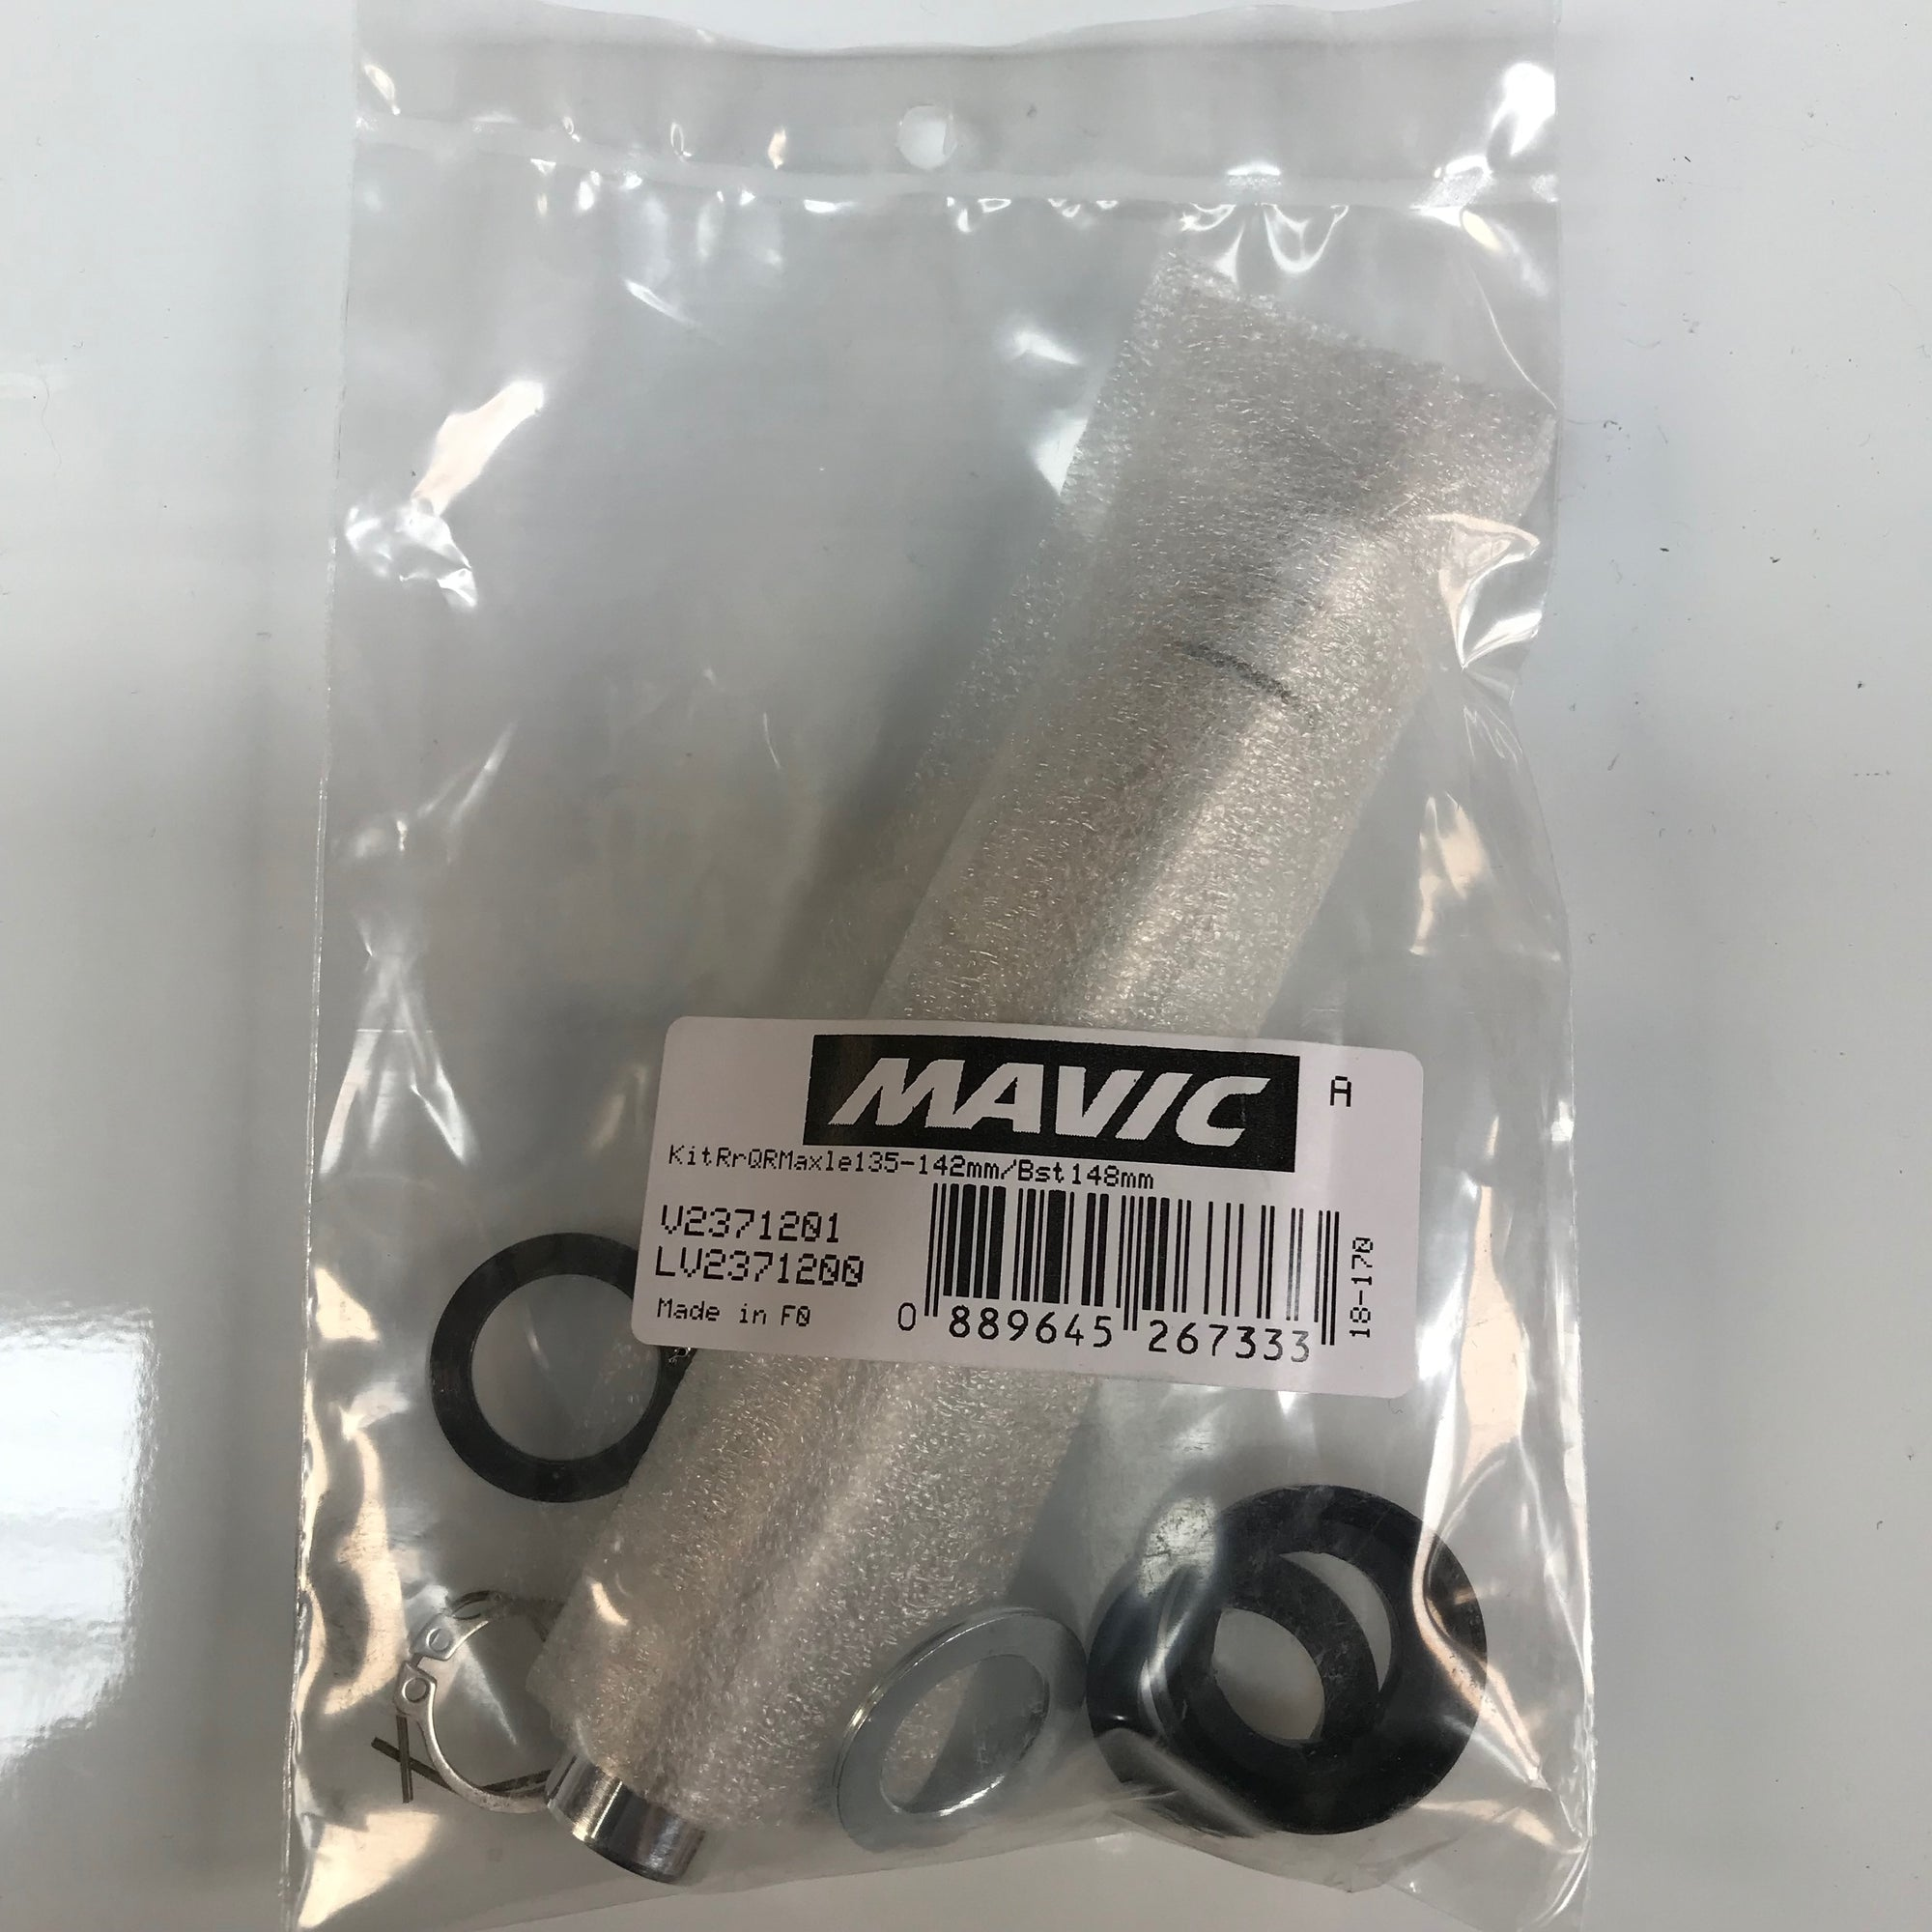 Mavic MTB QRM Rear Axle Kit - 135-142/Boost 148 V2371201